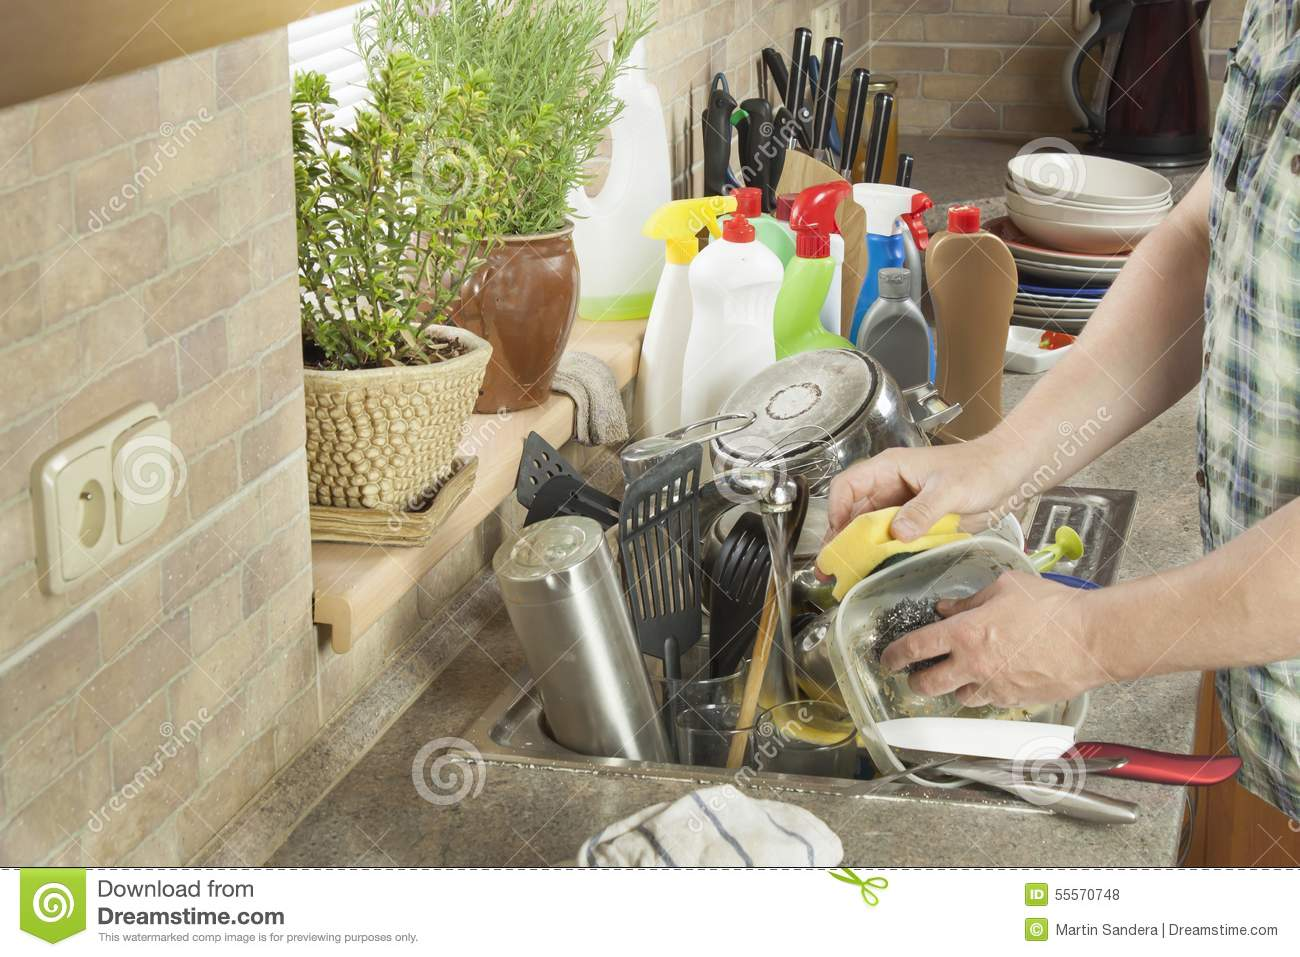 Man Washing Dirty Dishes In The Kitchen Sink. Stock Photo - Image of ...